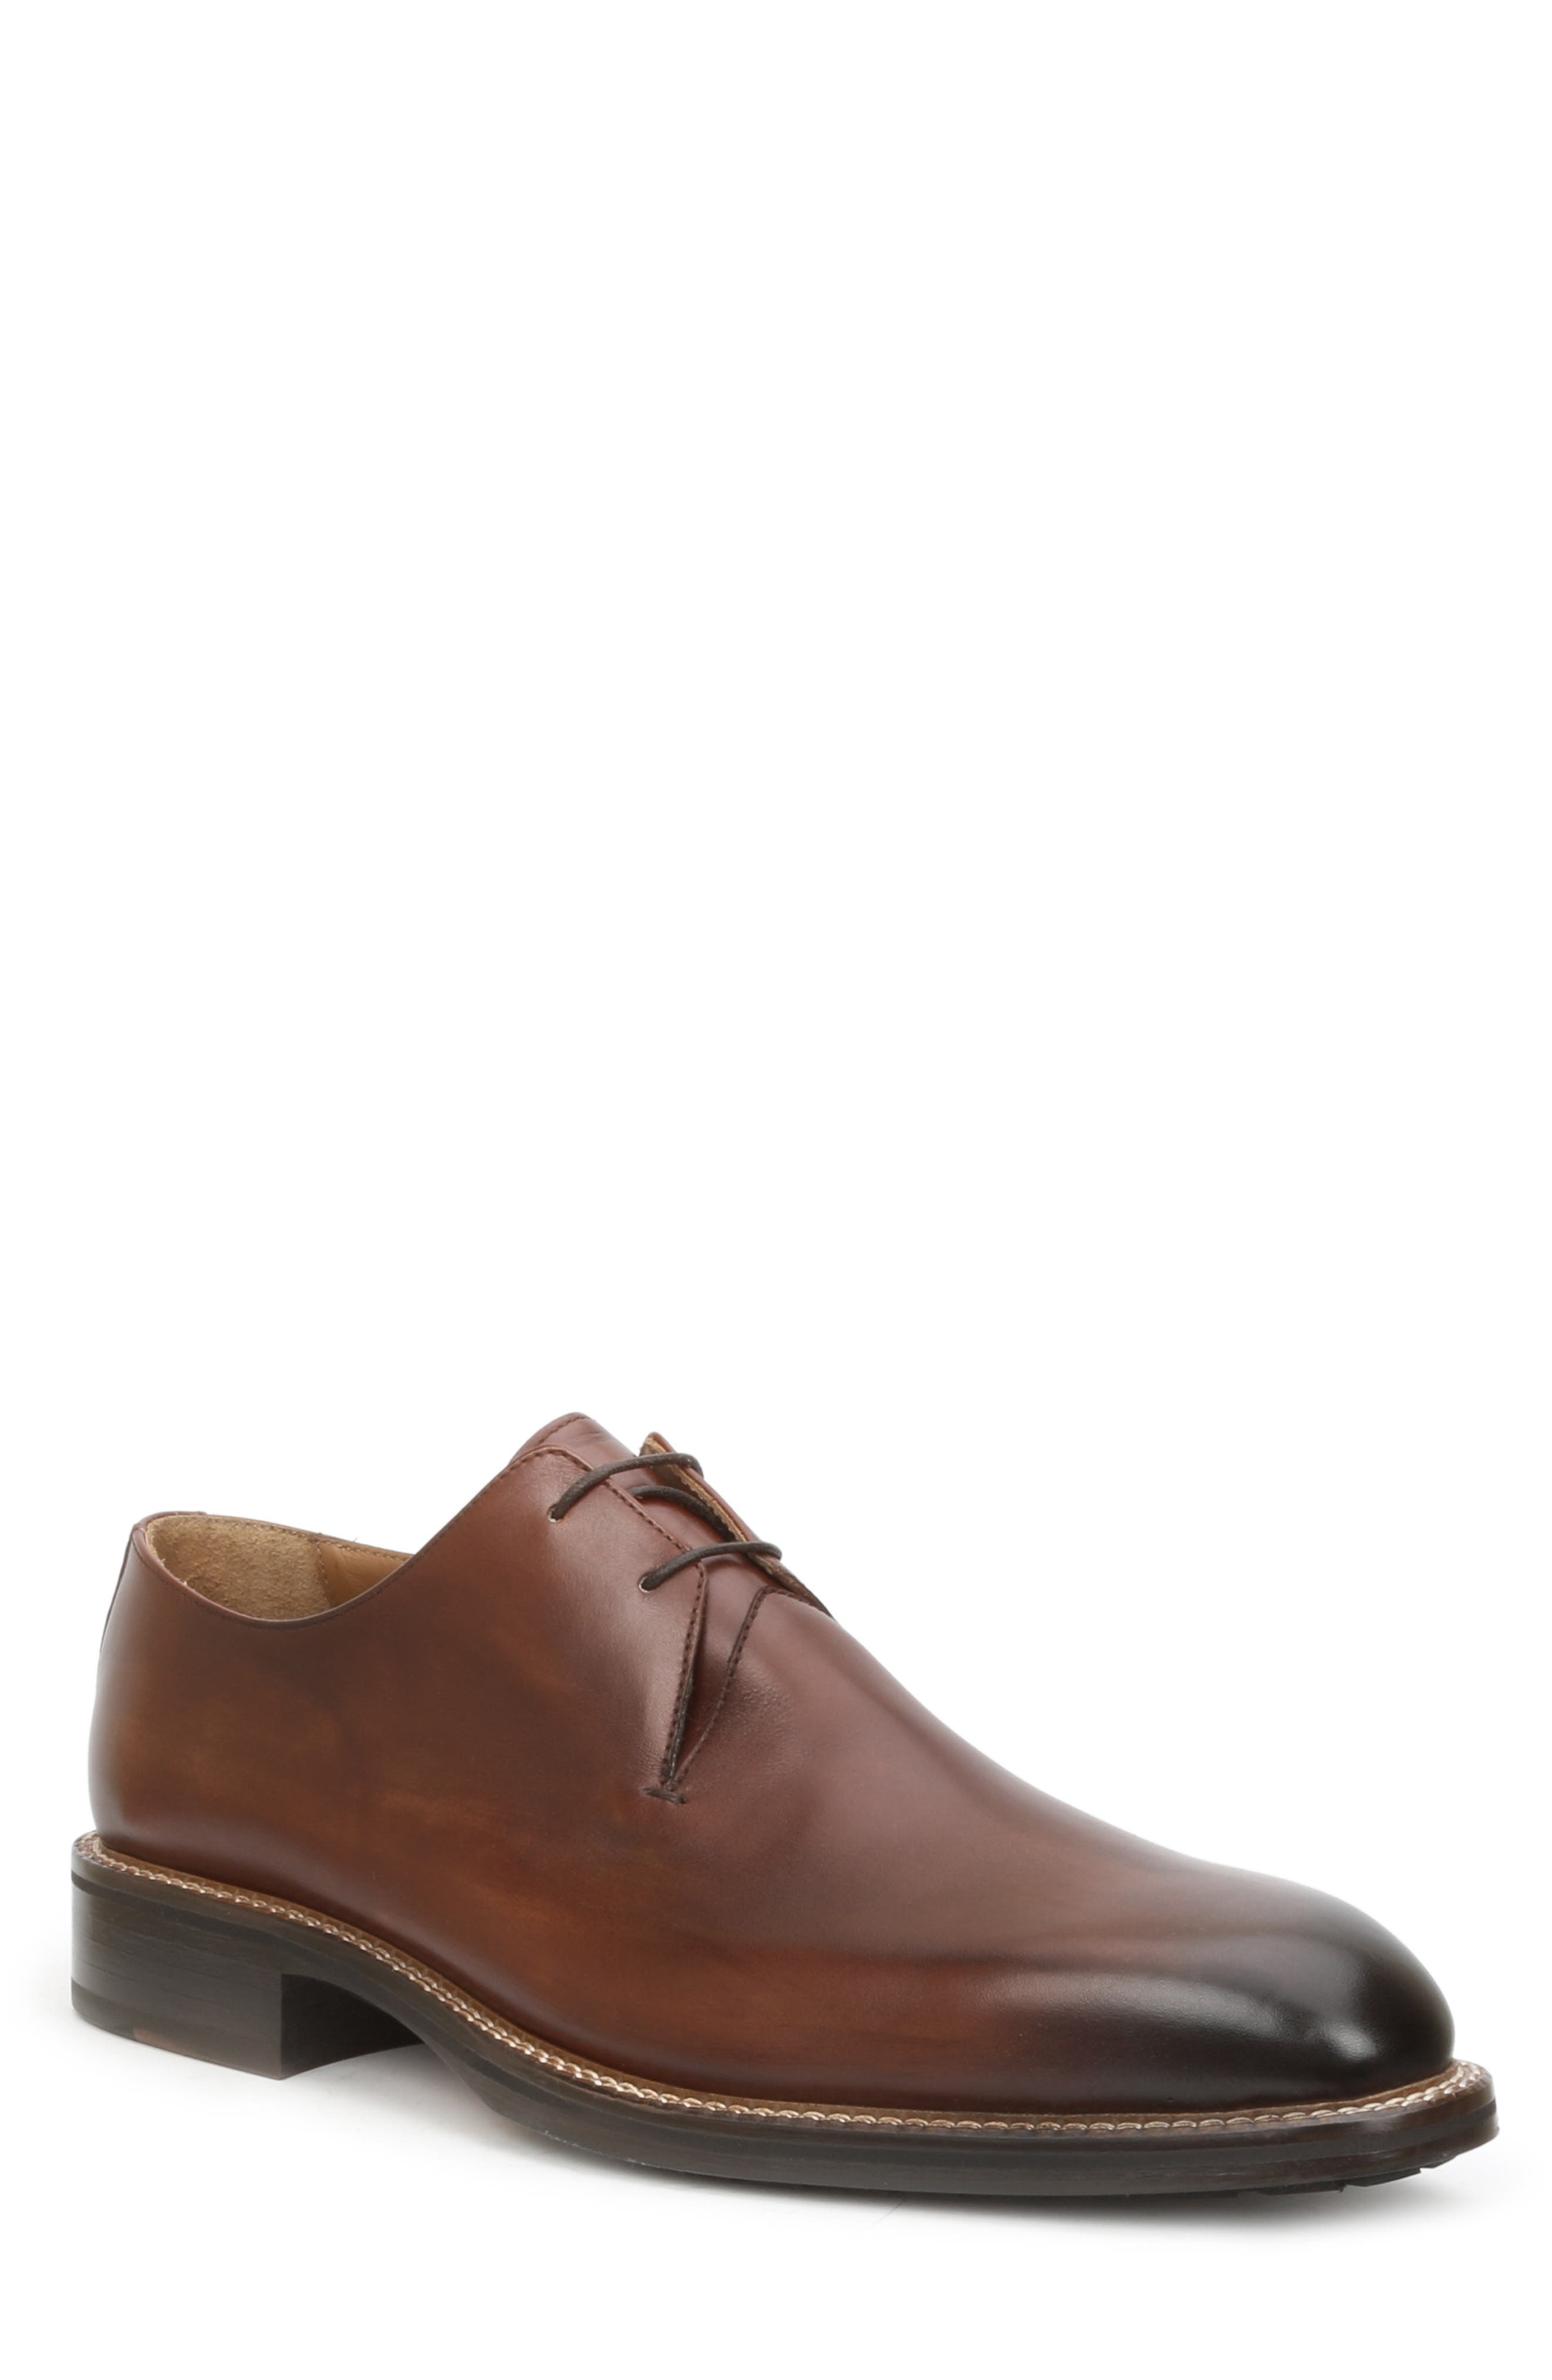 BRUNO MAGLI Norris Plain Toe Leather Lace-Up Shoes in Cognac